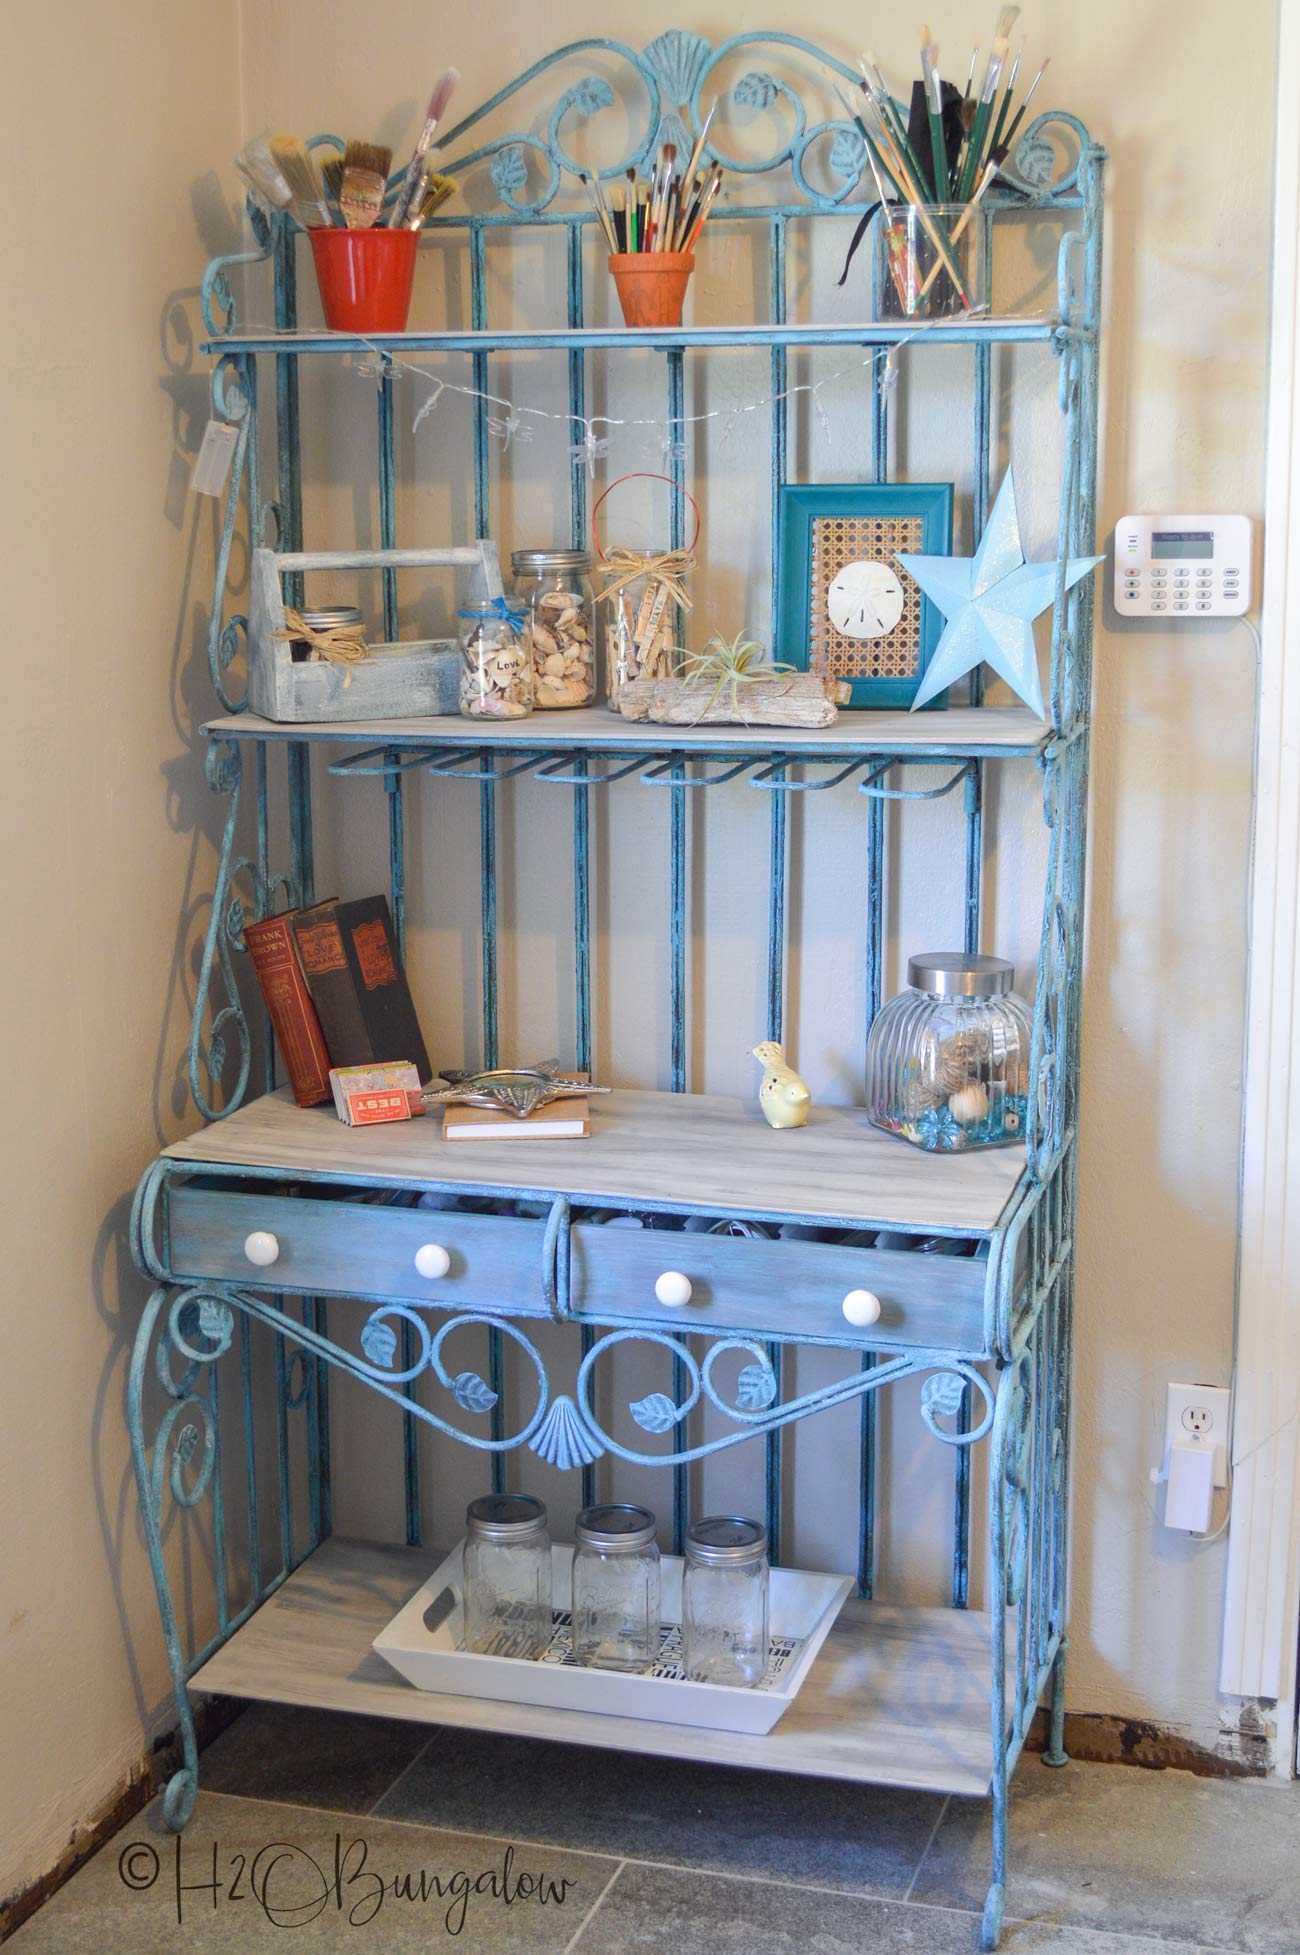 Lots of DIY shelving project ideas for home and storage #shelves #shelvingprojects #storage